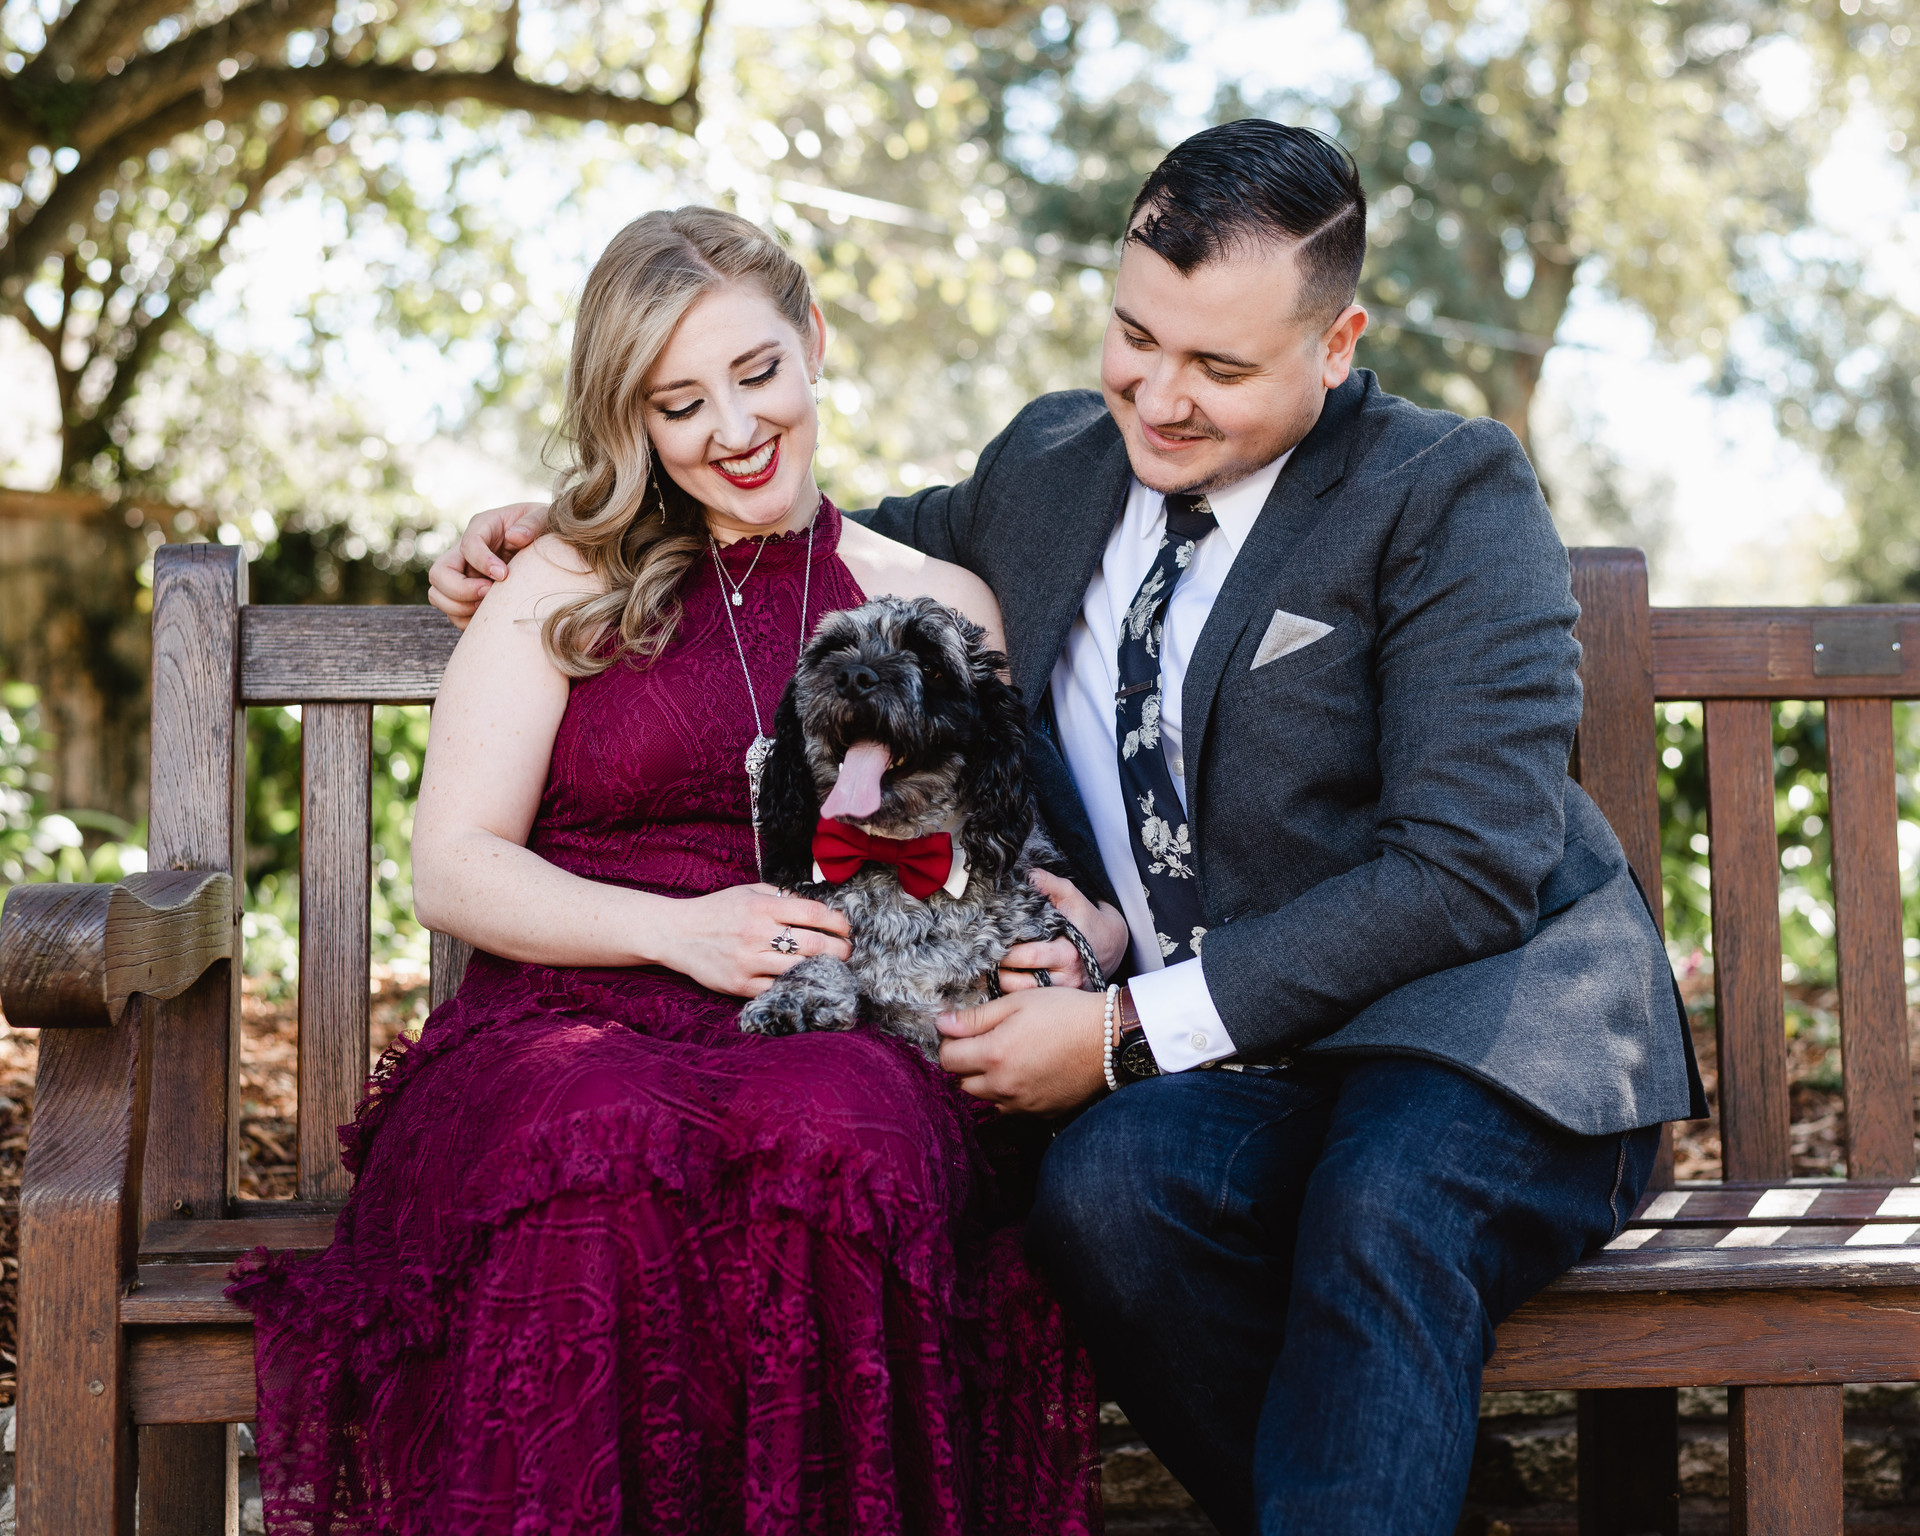 Curtis and Ashley's small intimate wedding